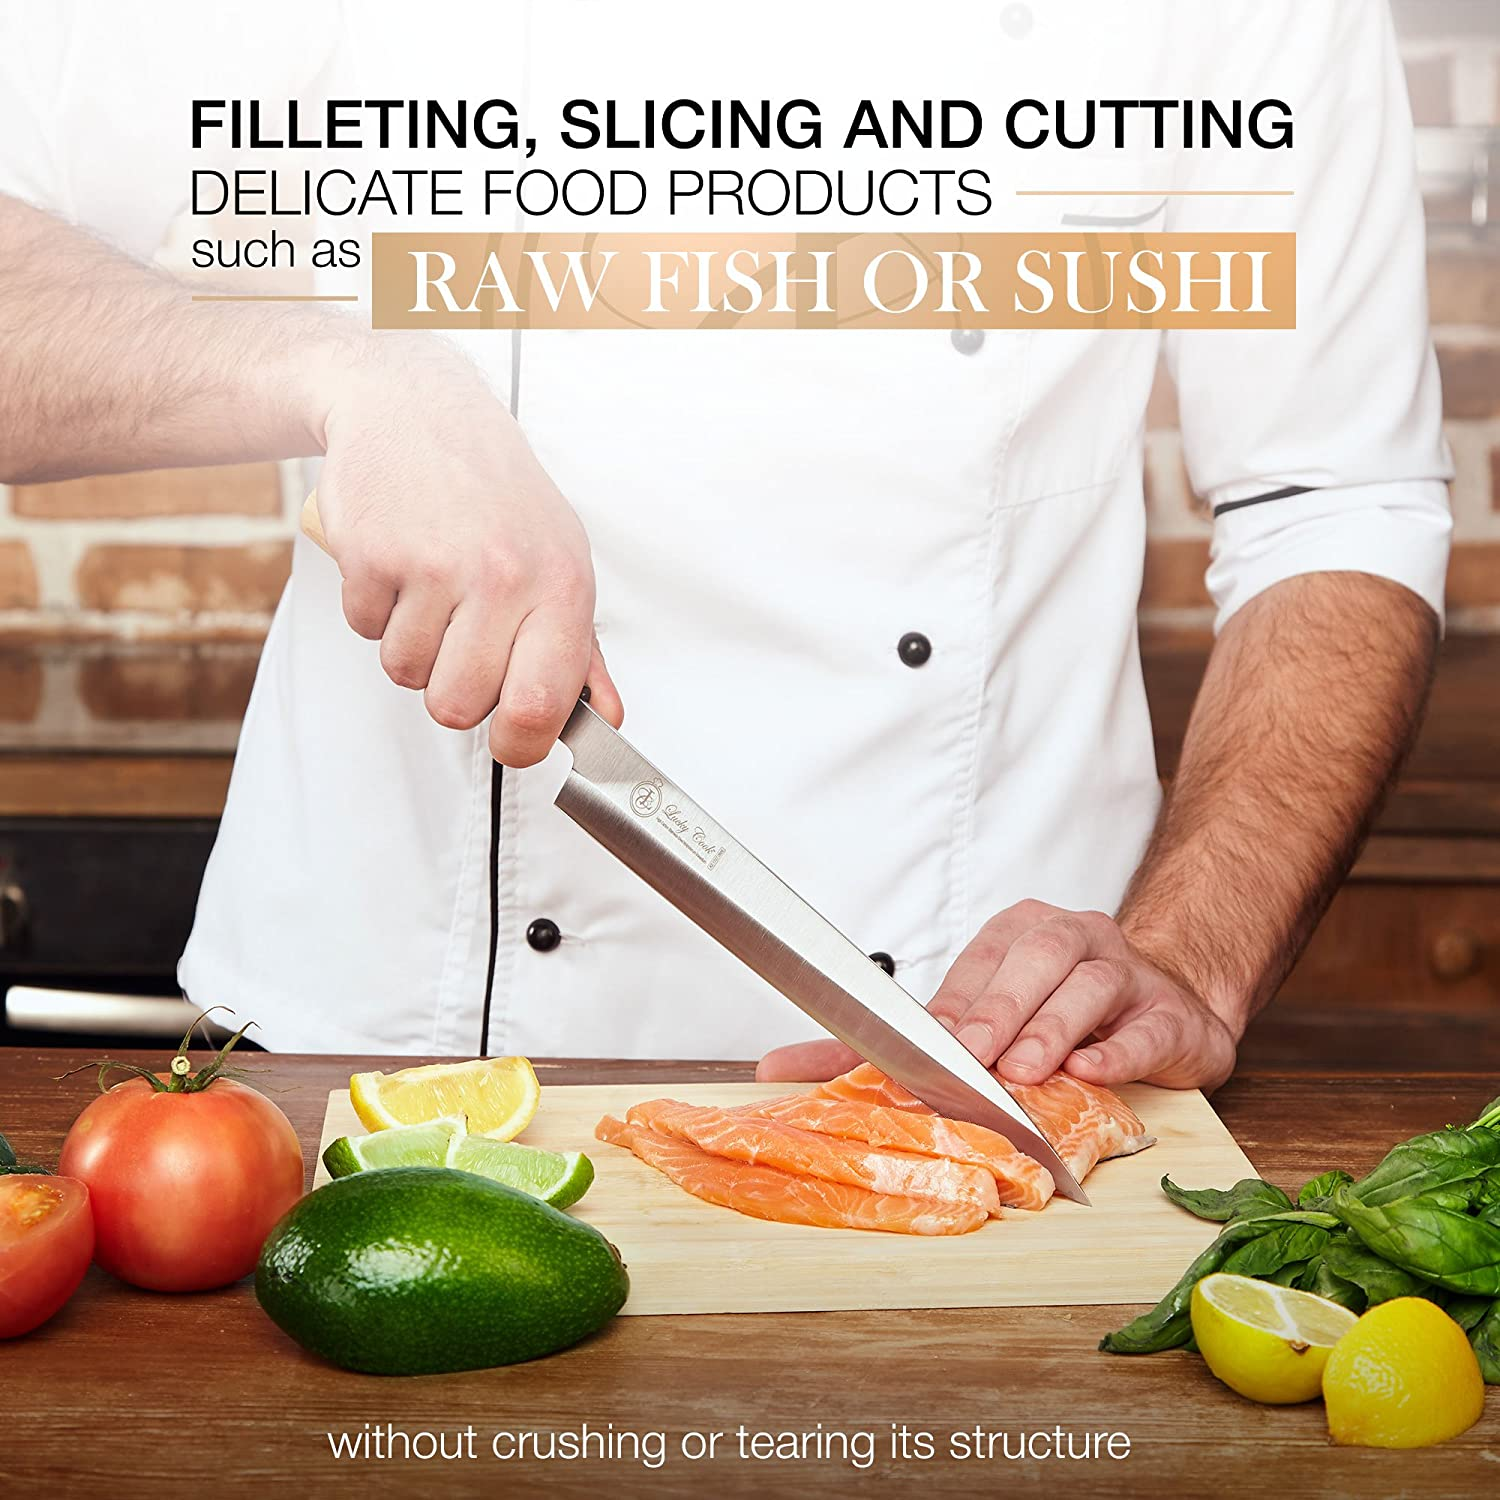 Sashimi Sushi Knife 10 Inch - Perfect Knife For Cutting Sushi & Sashimi, Fish Filleting & Slicing - Very Sharp Stainless Steel Blade & Traditional ...